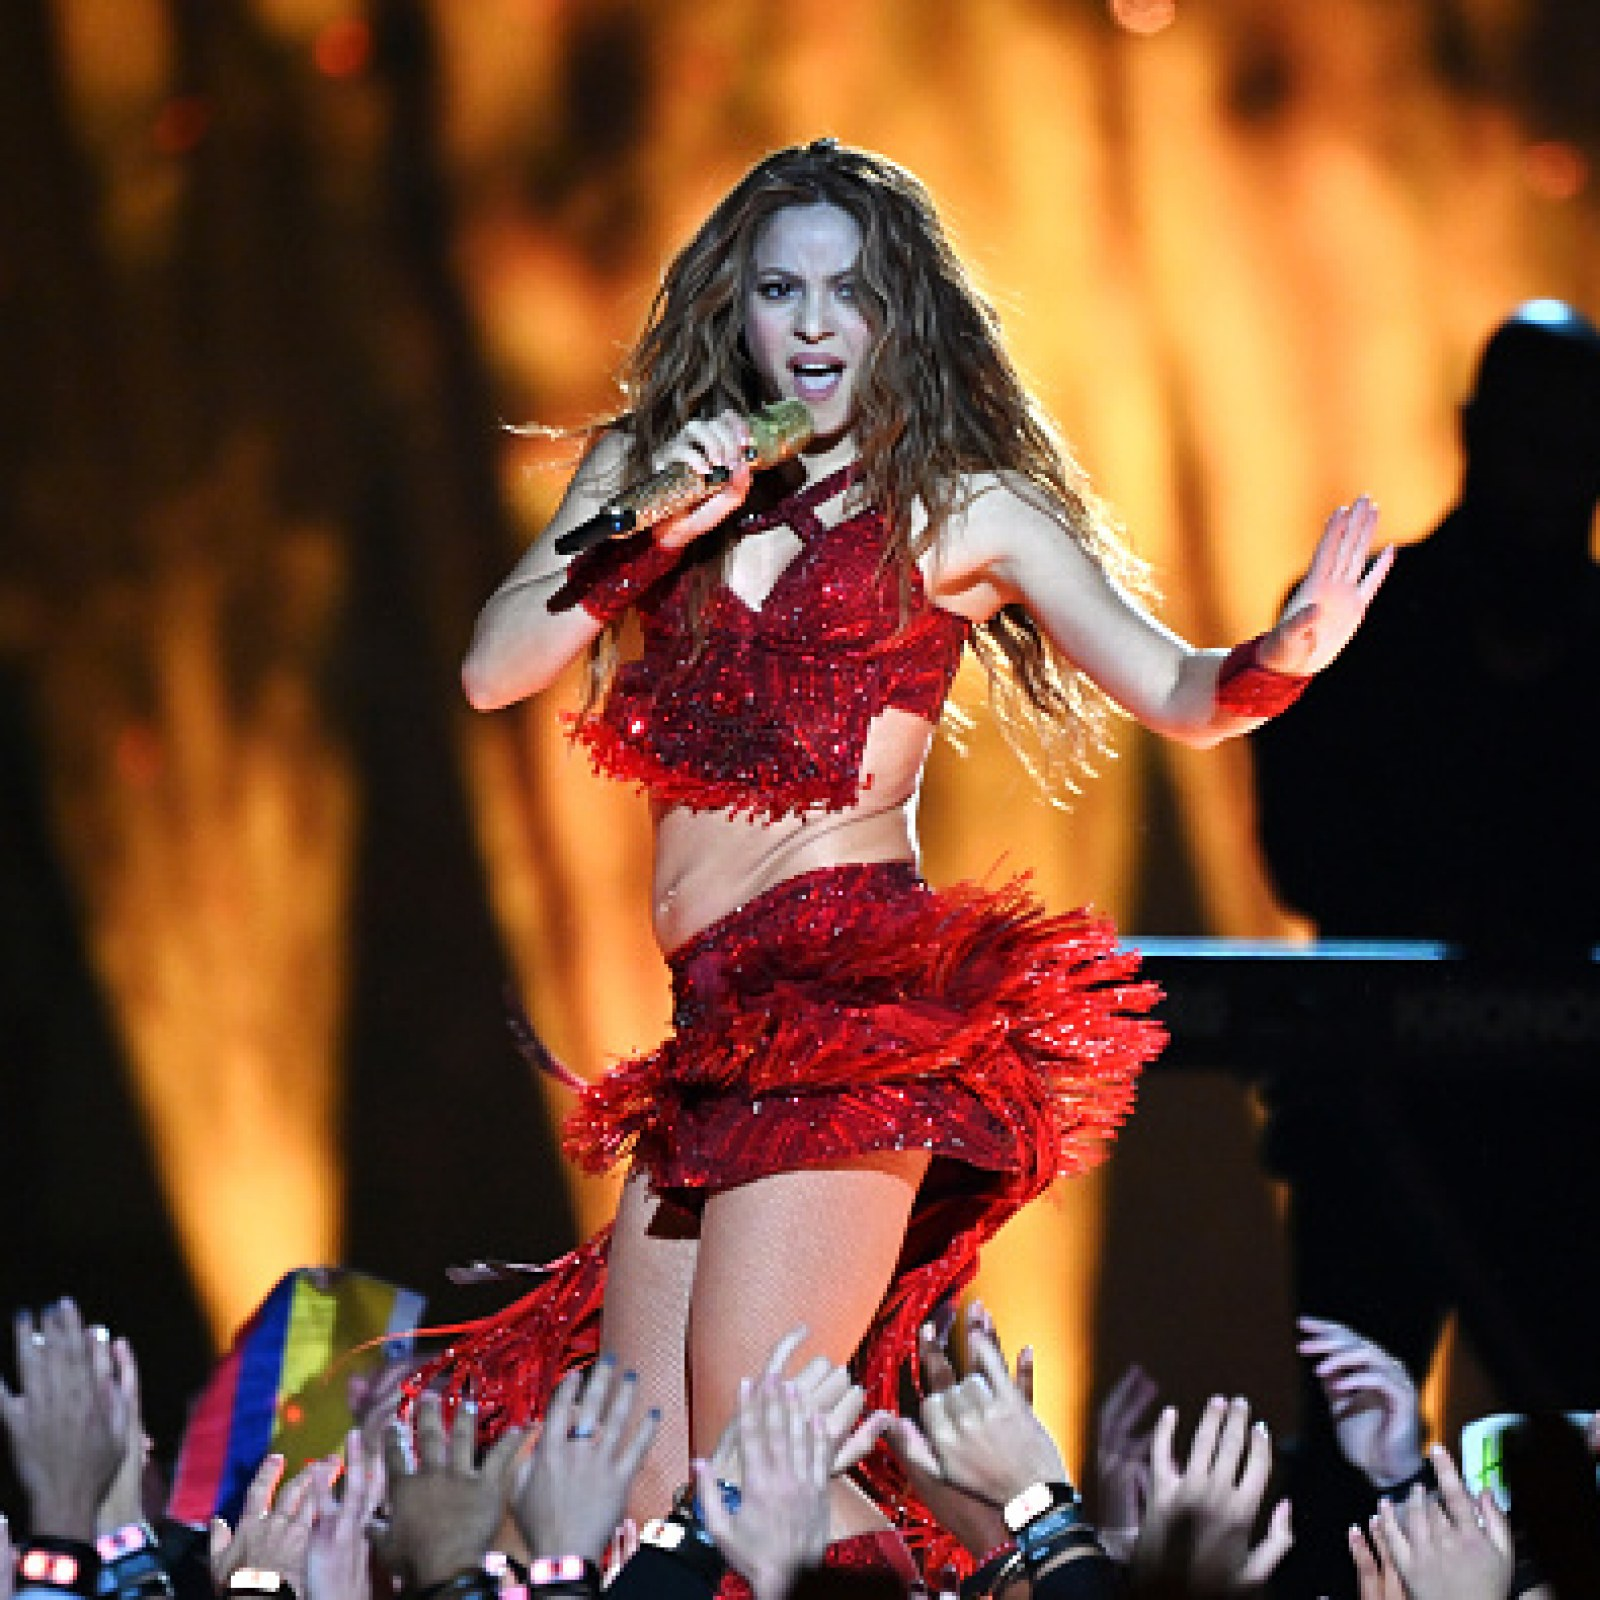 Best Super Bowl Halftime Show Ever Shakira And J Lo Have Fans Raving After Sunday Performance